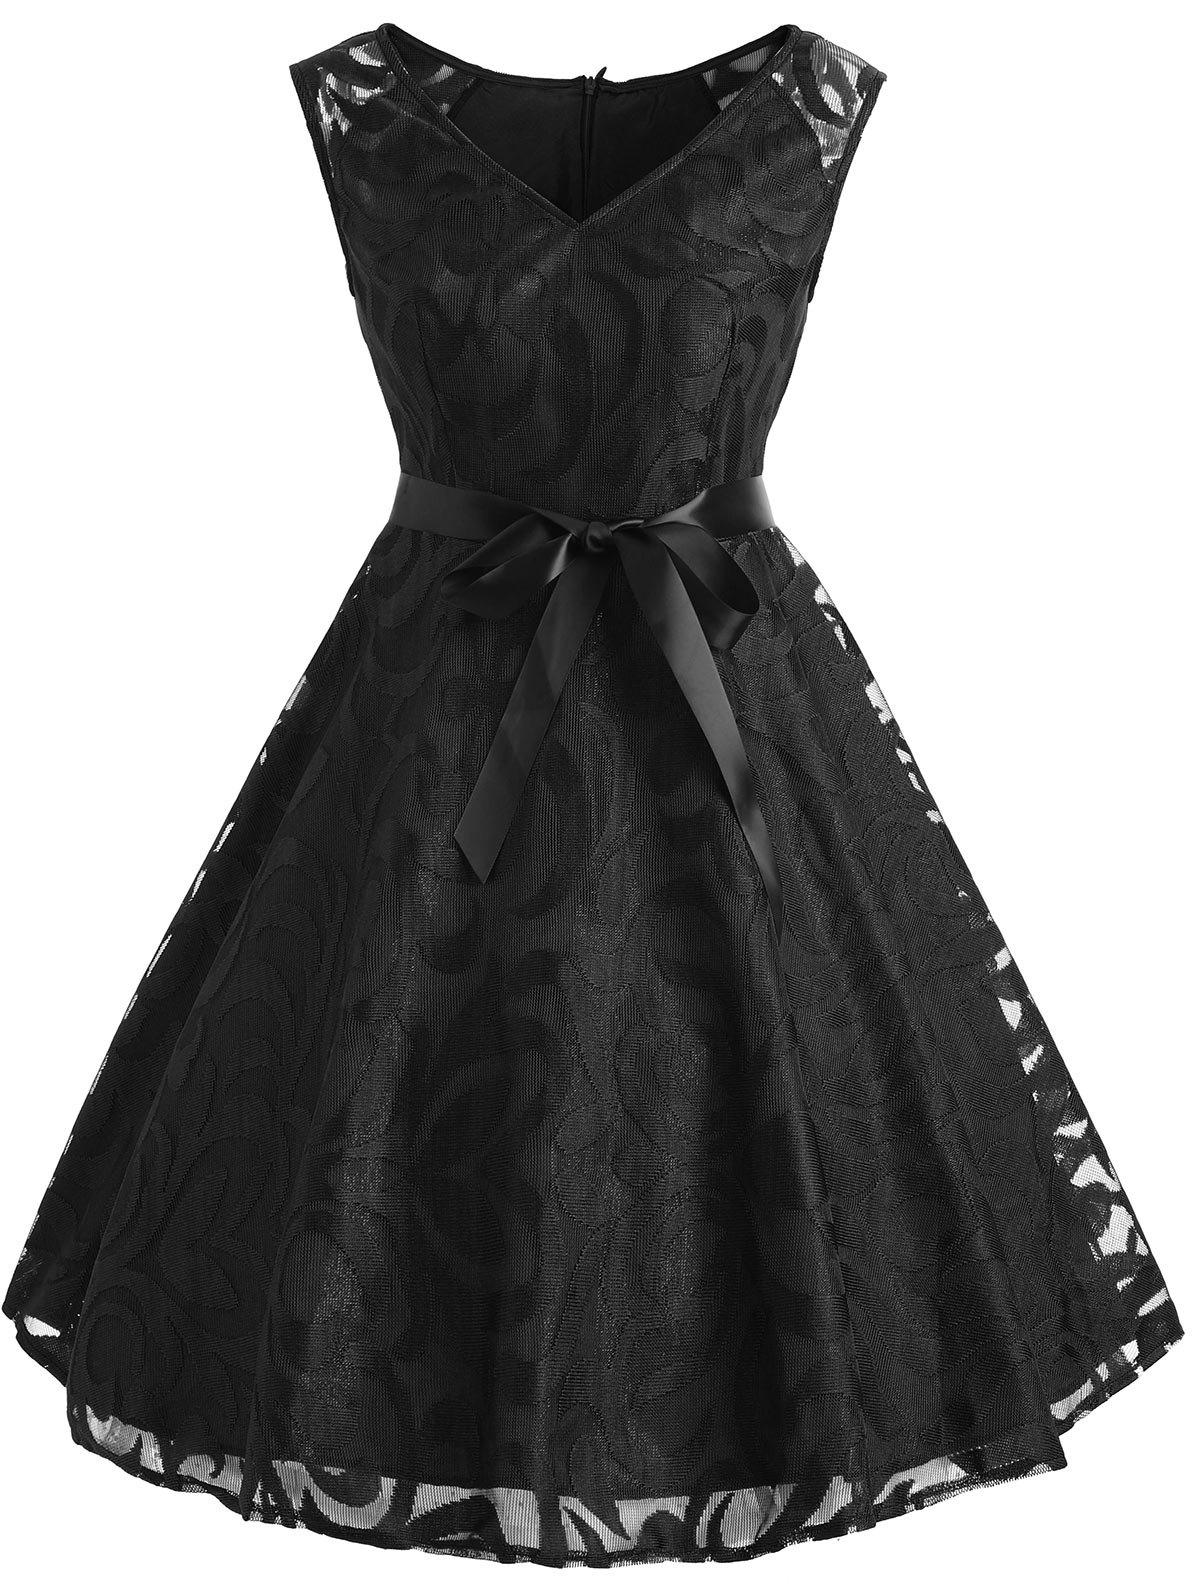 Lace Overlay V Neck Belted Dress - BLACK XL